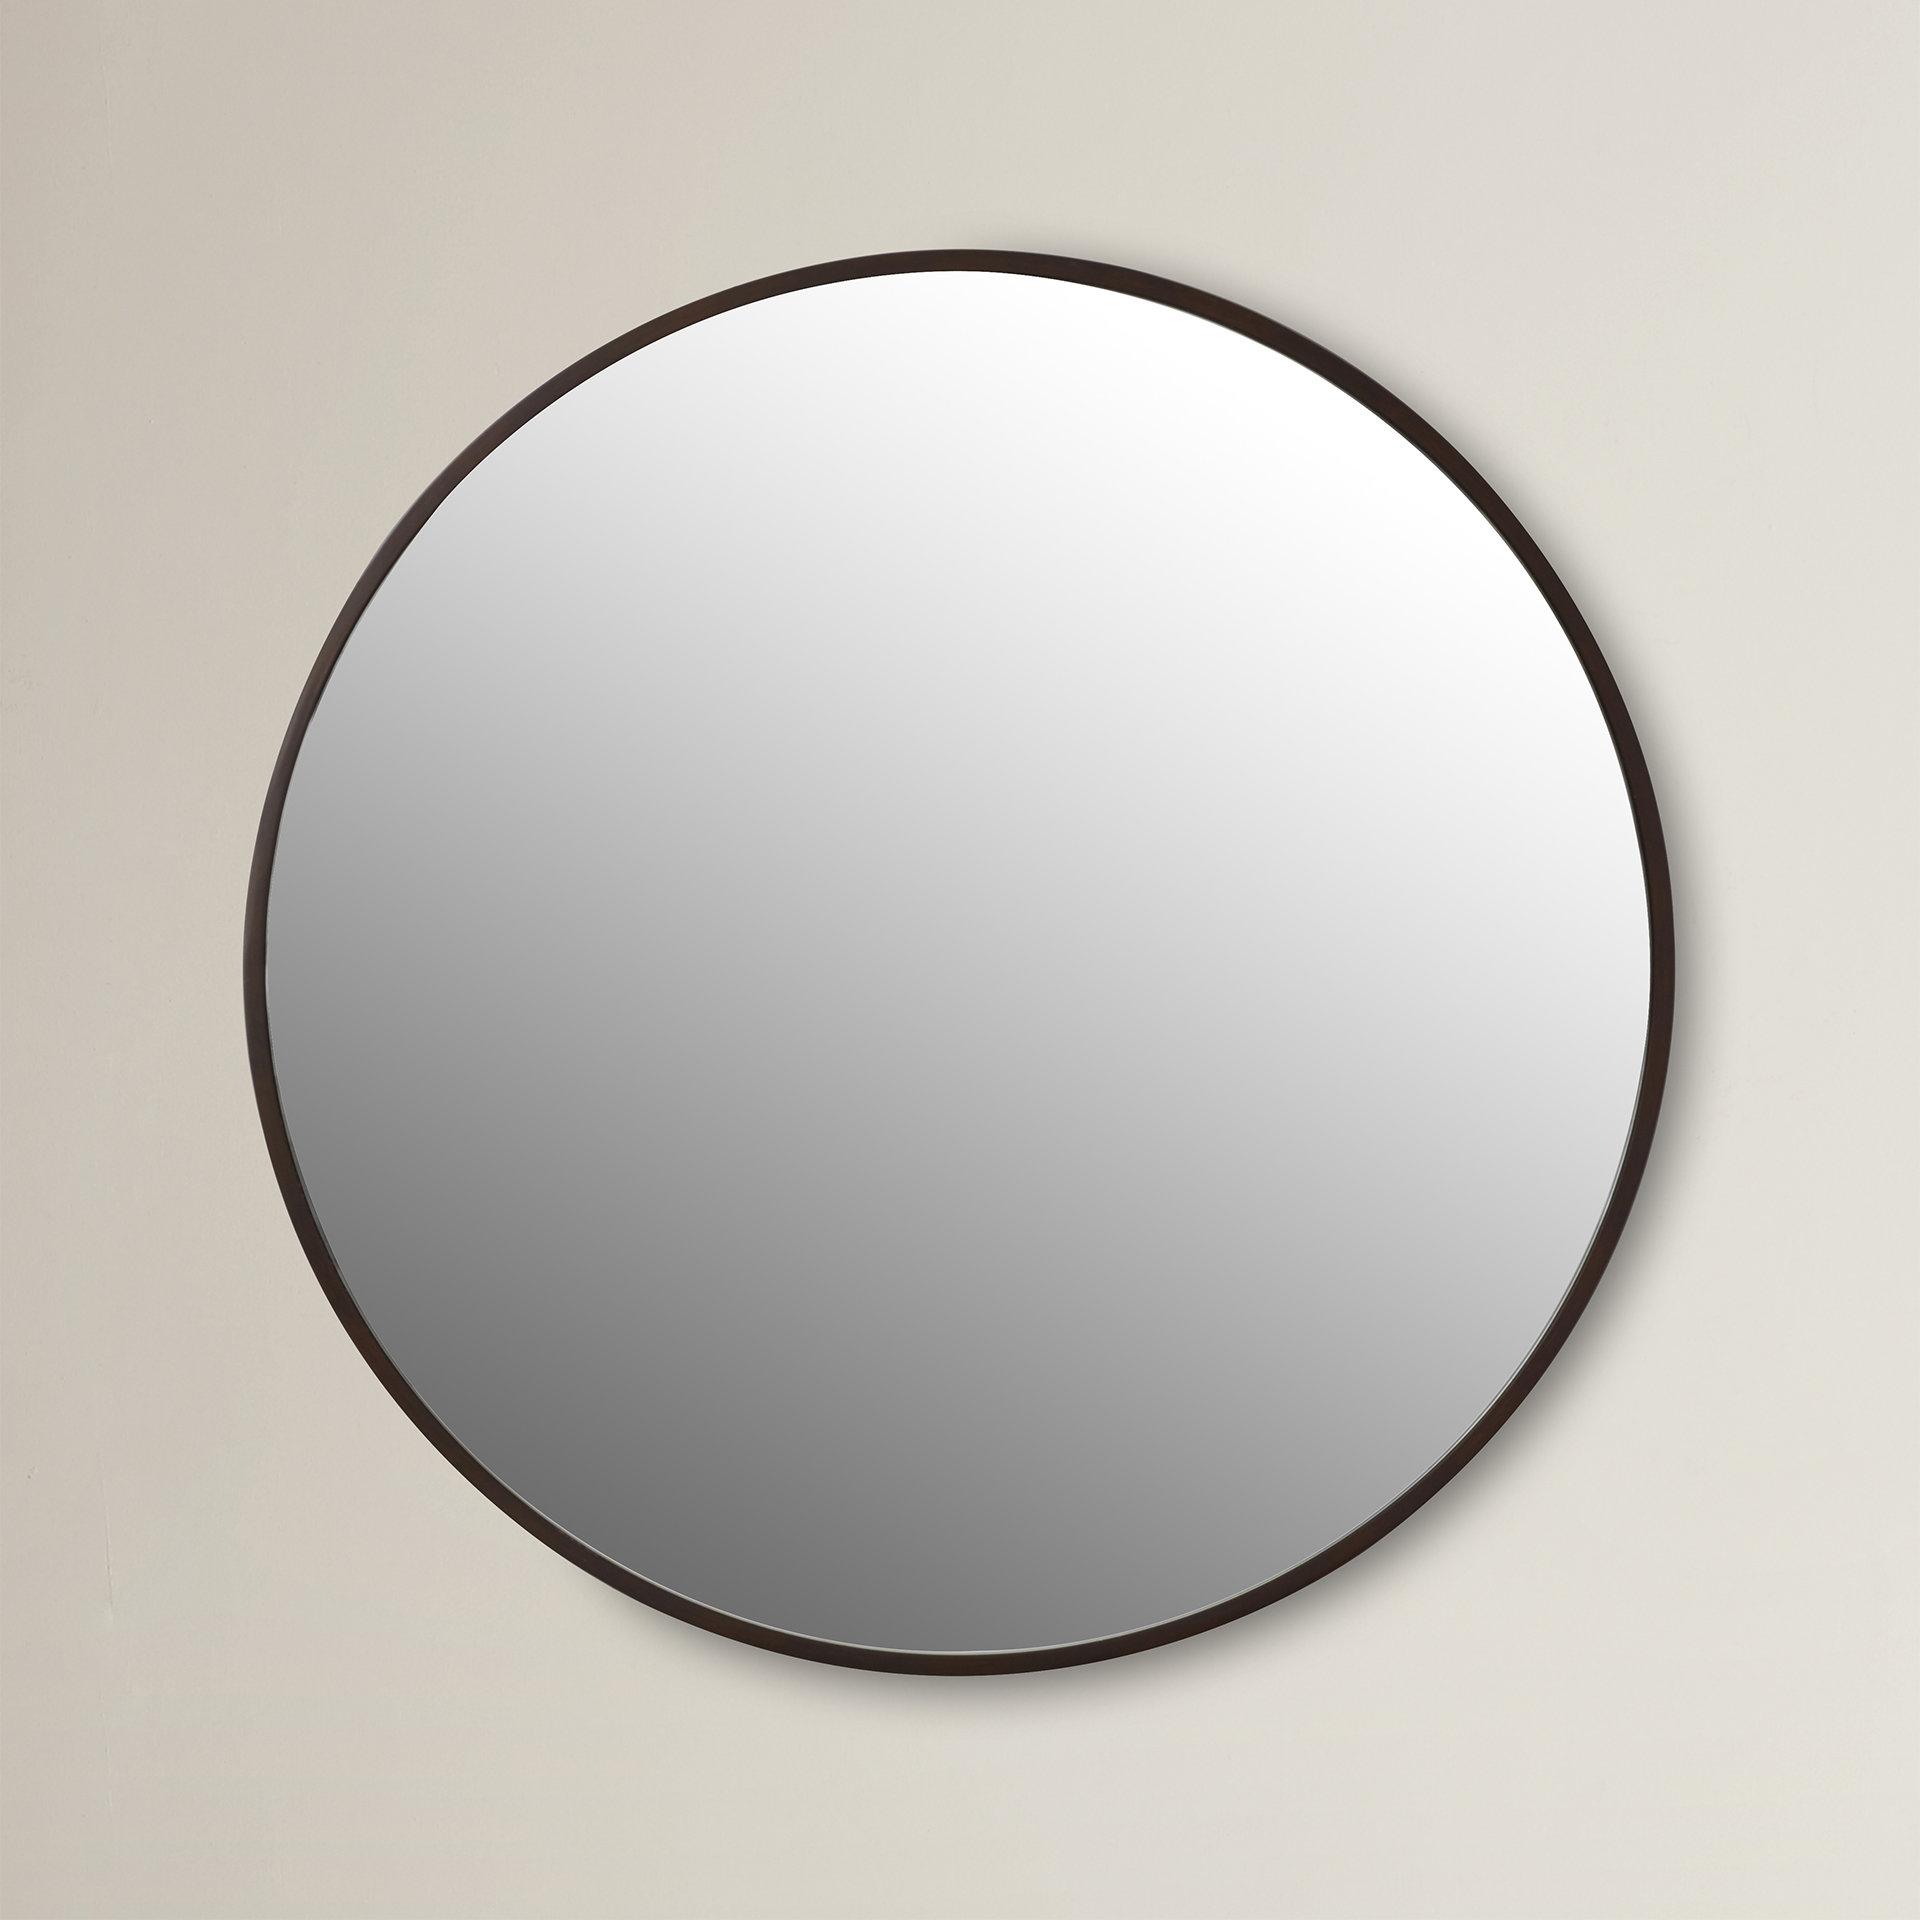 Levan Modern & Contemporary Accent Mirror Intended For Colton Modern & Contemporary Wall Mirrors (View 21 of 30)